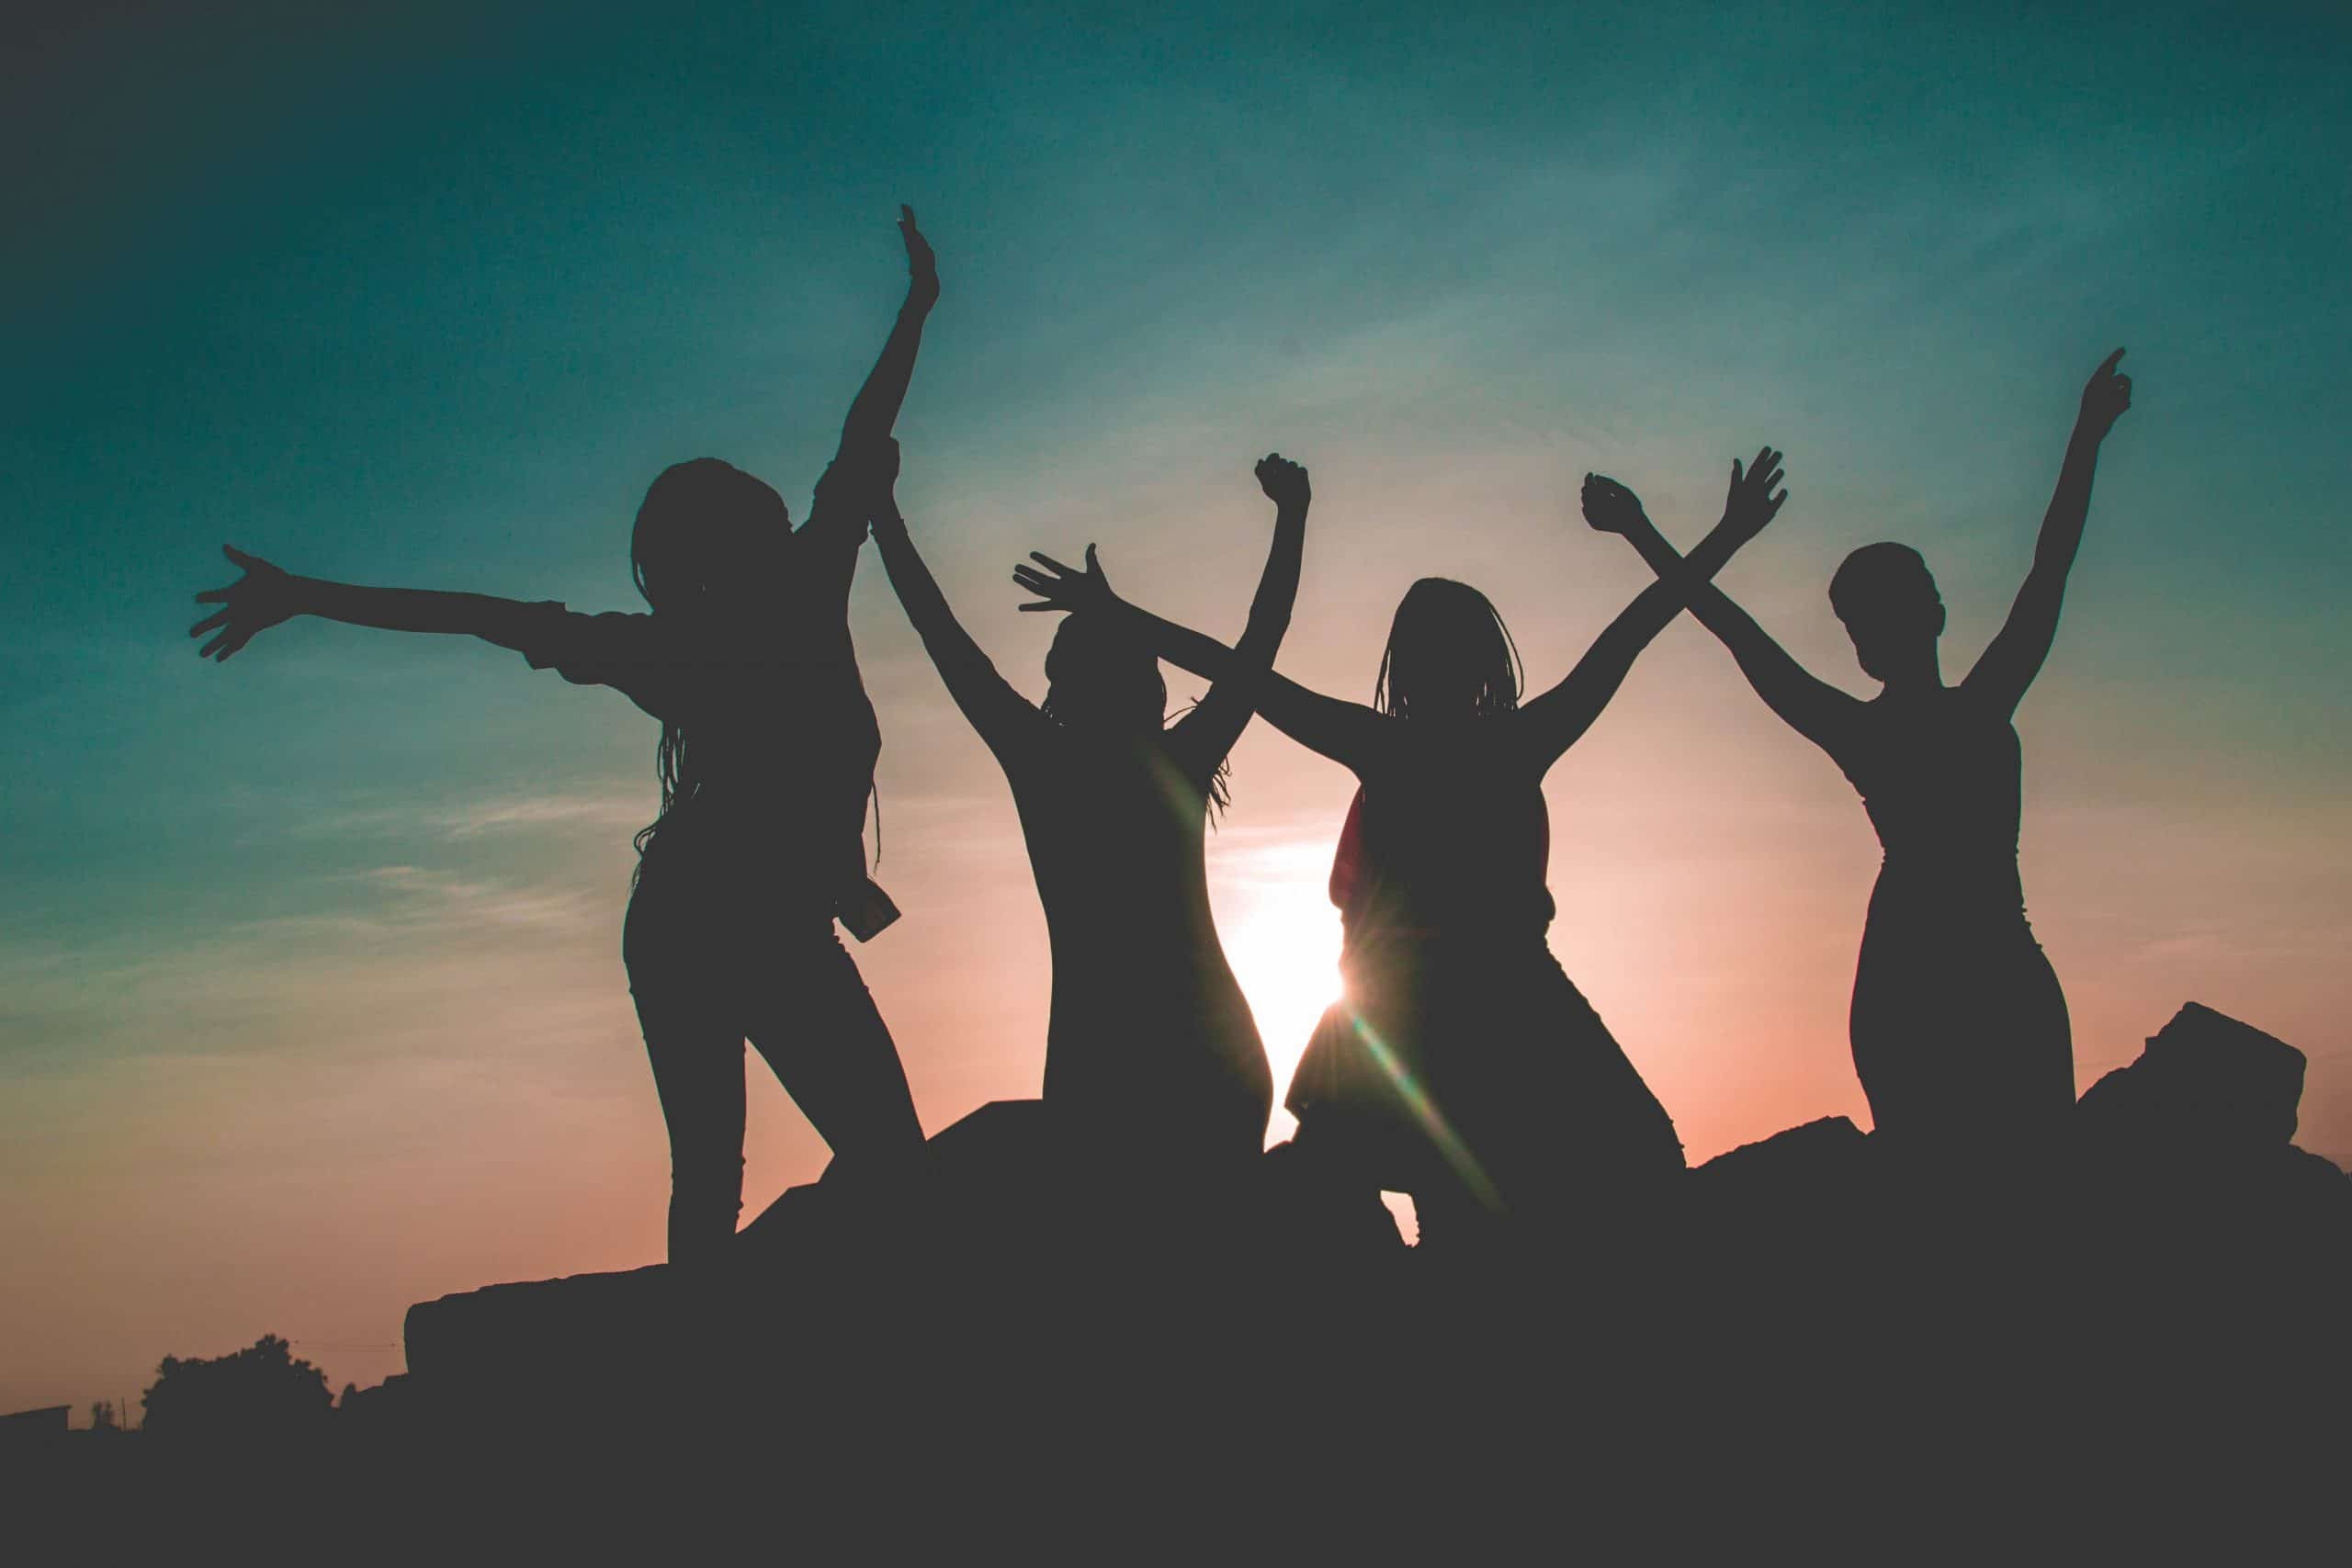 silhouette of four people against sun background 862848 1